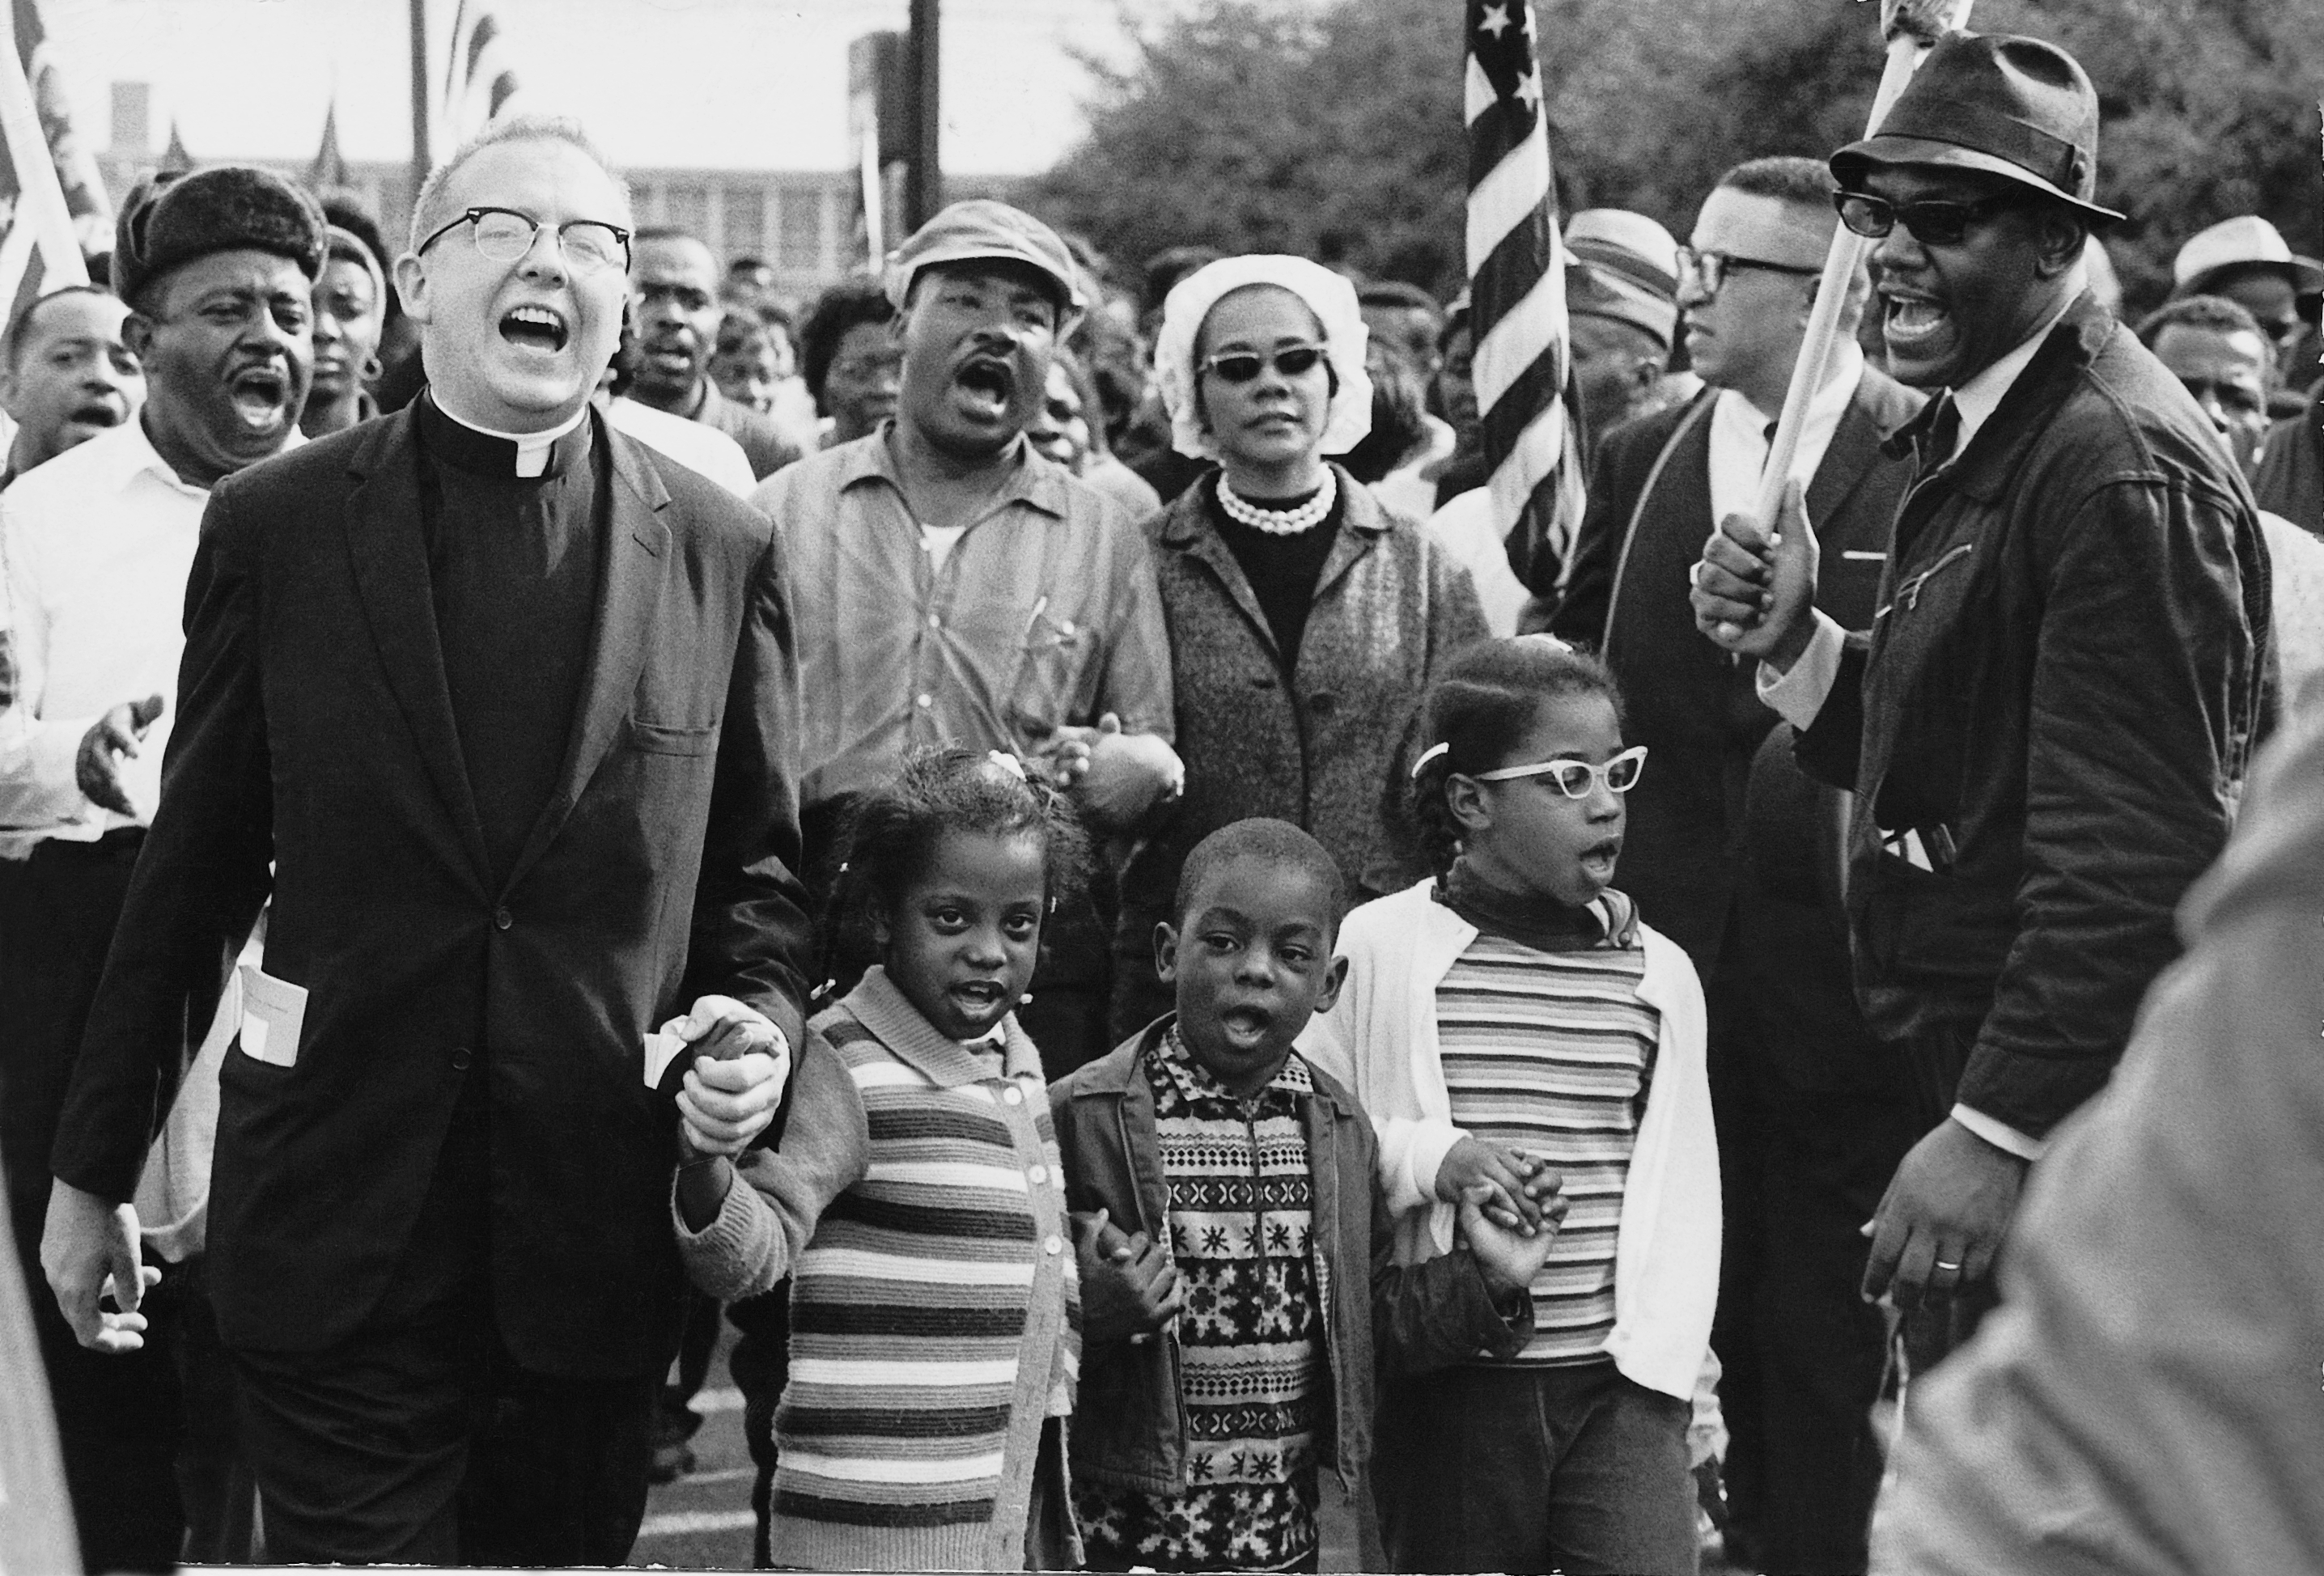 _line_leading_the_SELMA_TO_MONTGOMERY_MARCH_for_the_RIGHT_TO_VOTE.jpg